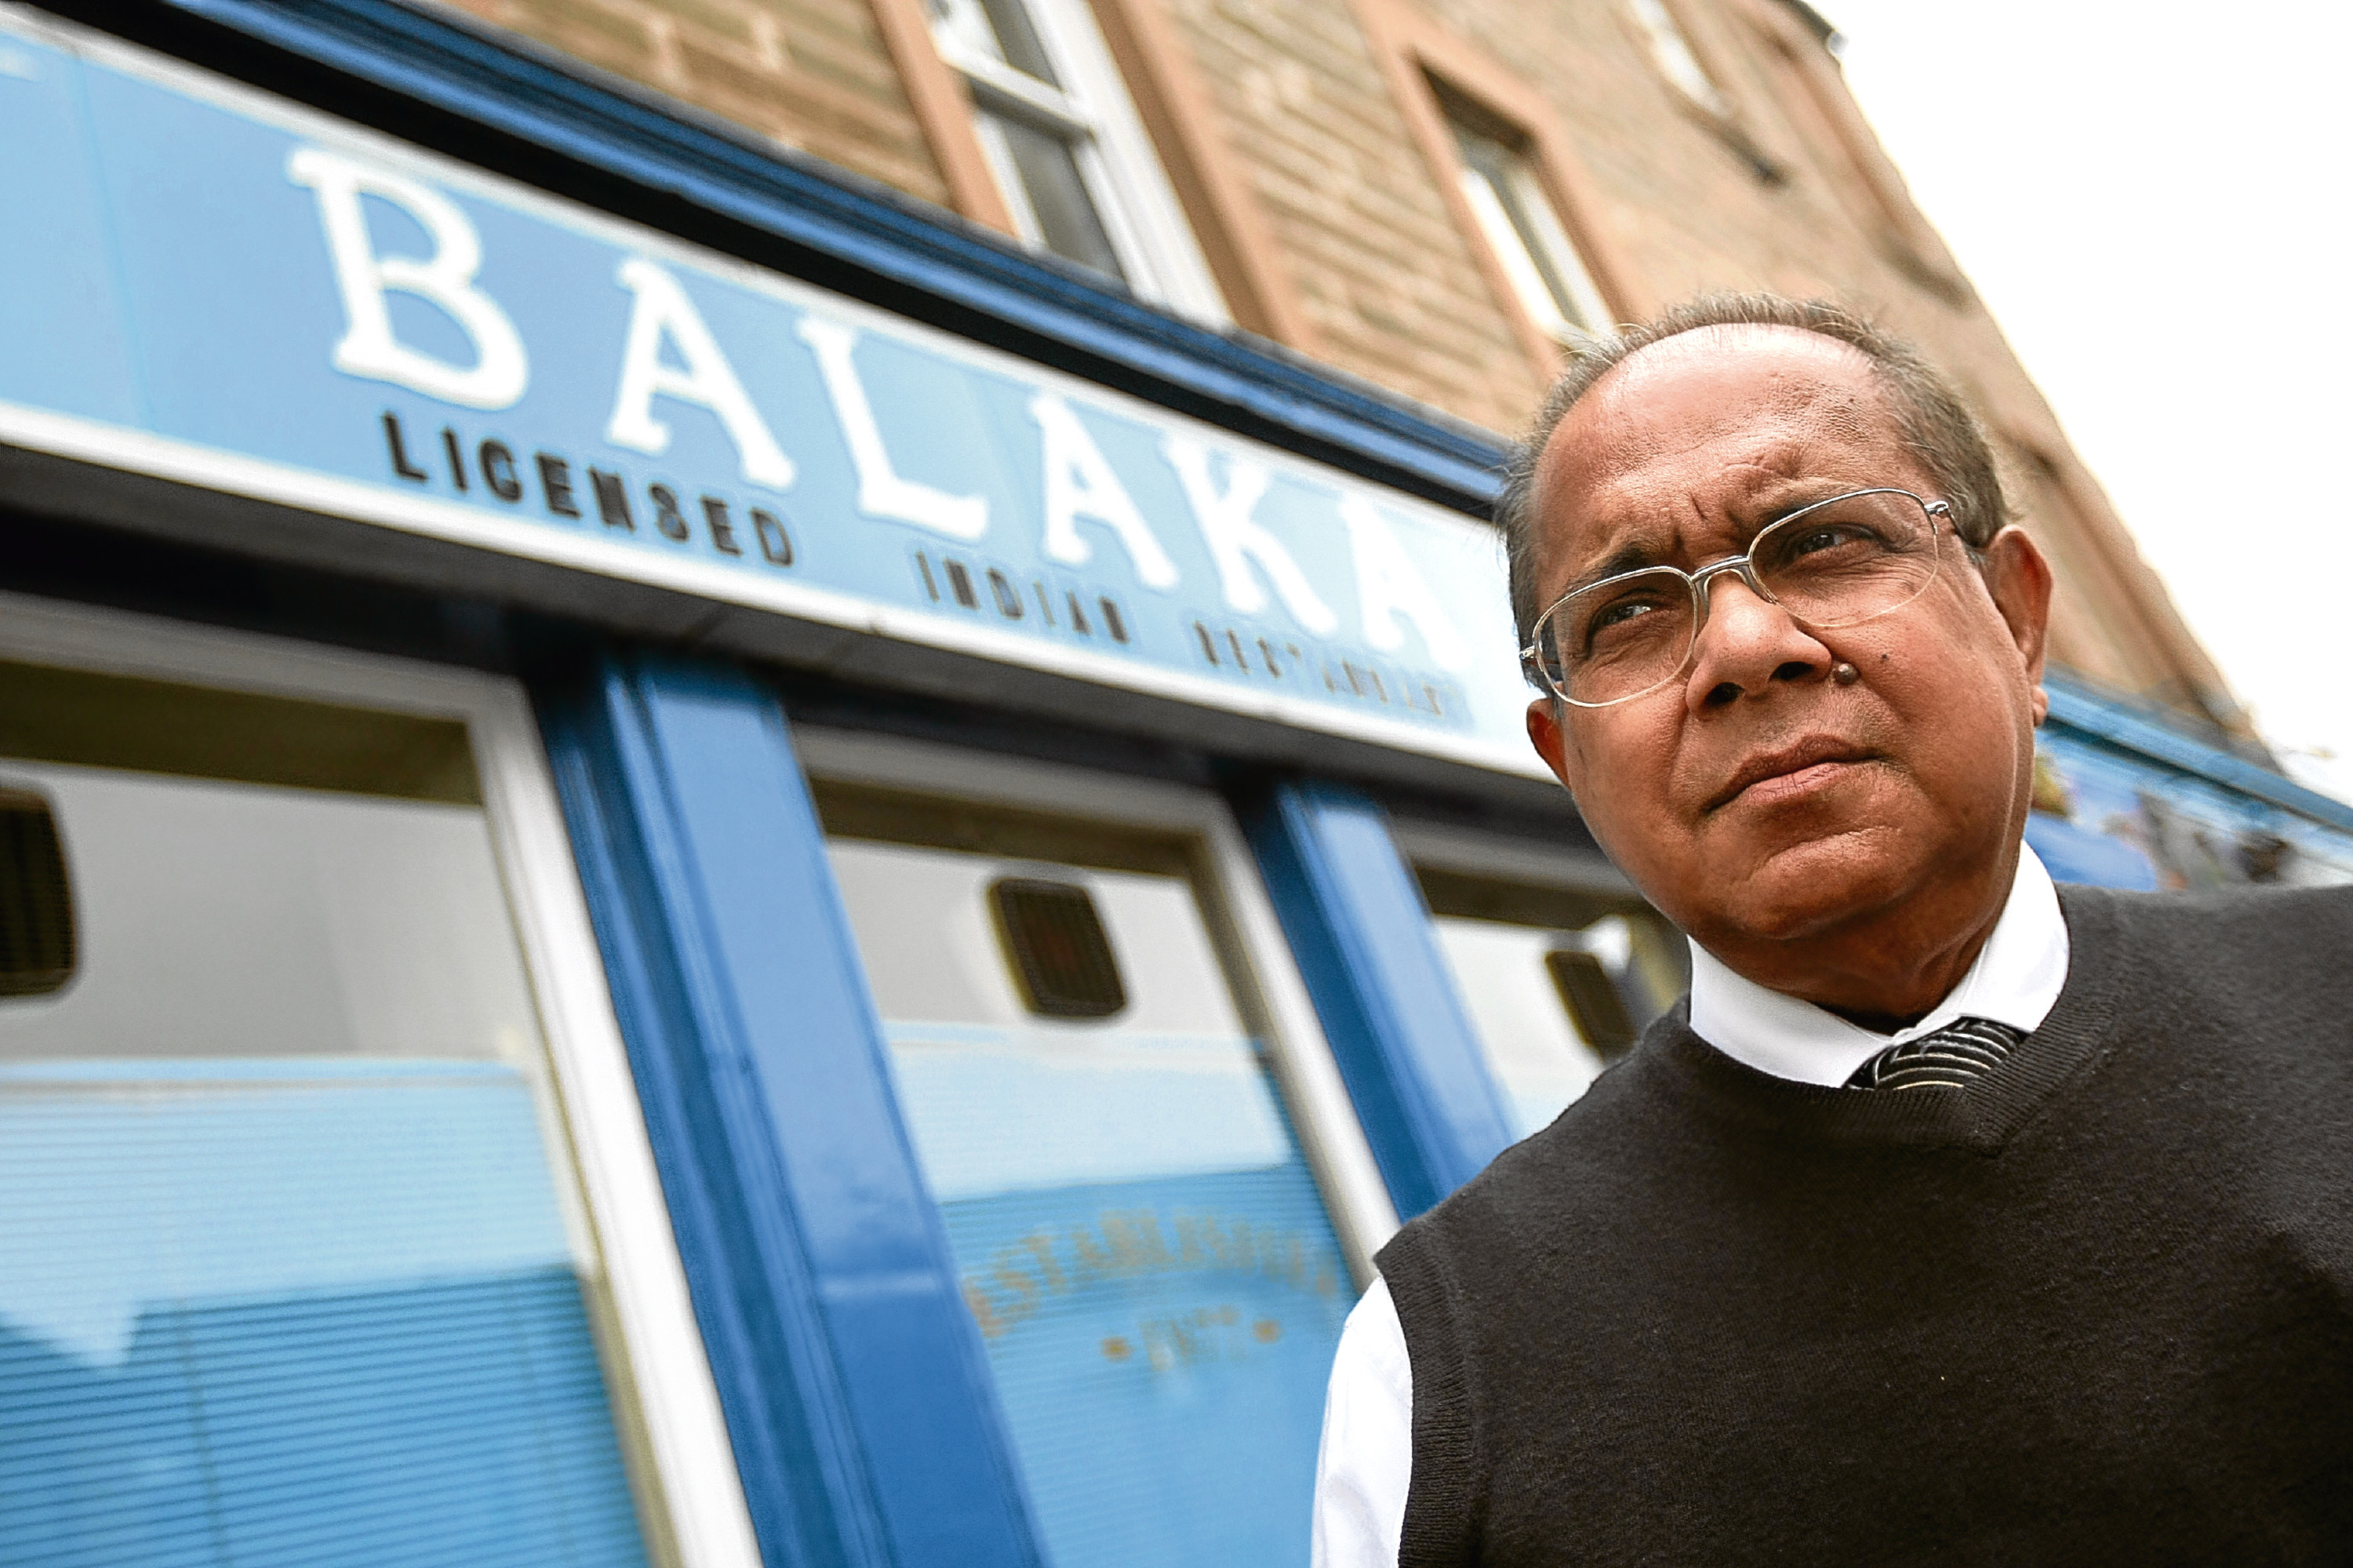 Samsur Rahman, owner of the Balaka Indian restaurant in Perth Road, which is celebrating its 40th anniversary.